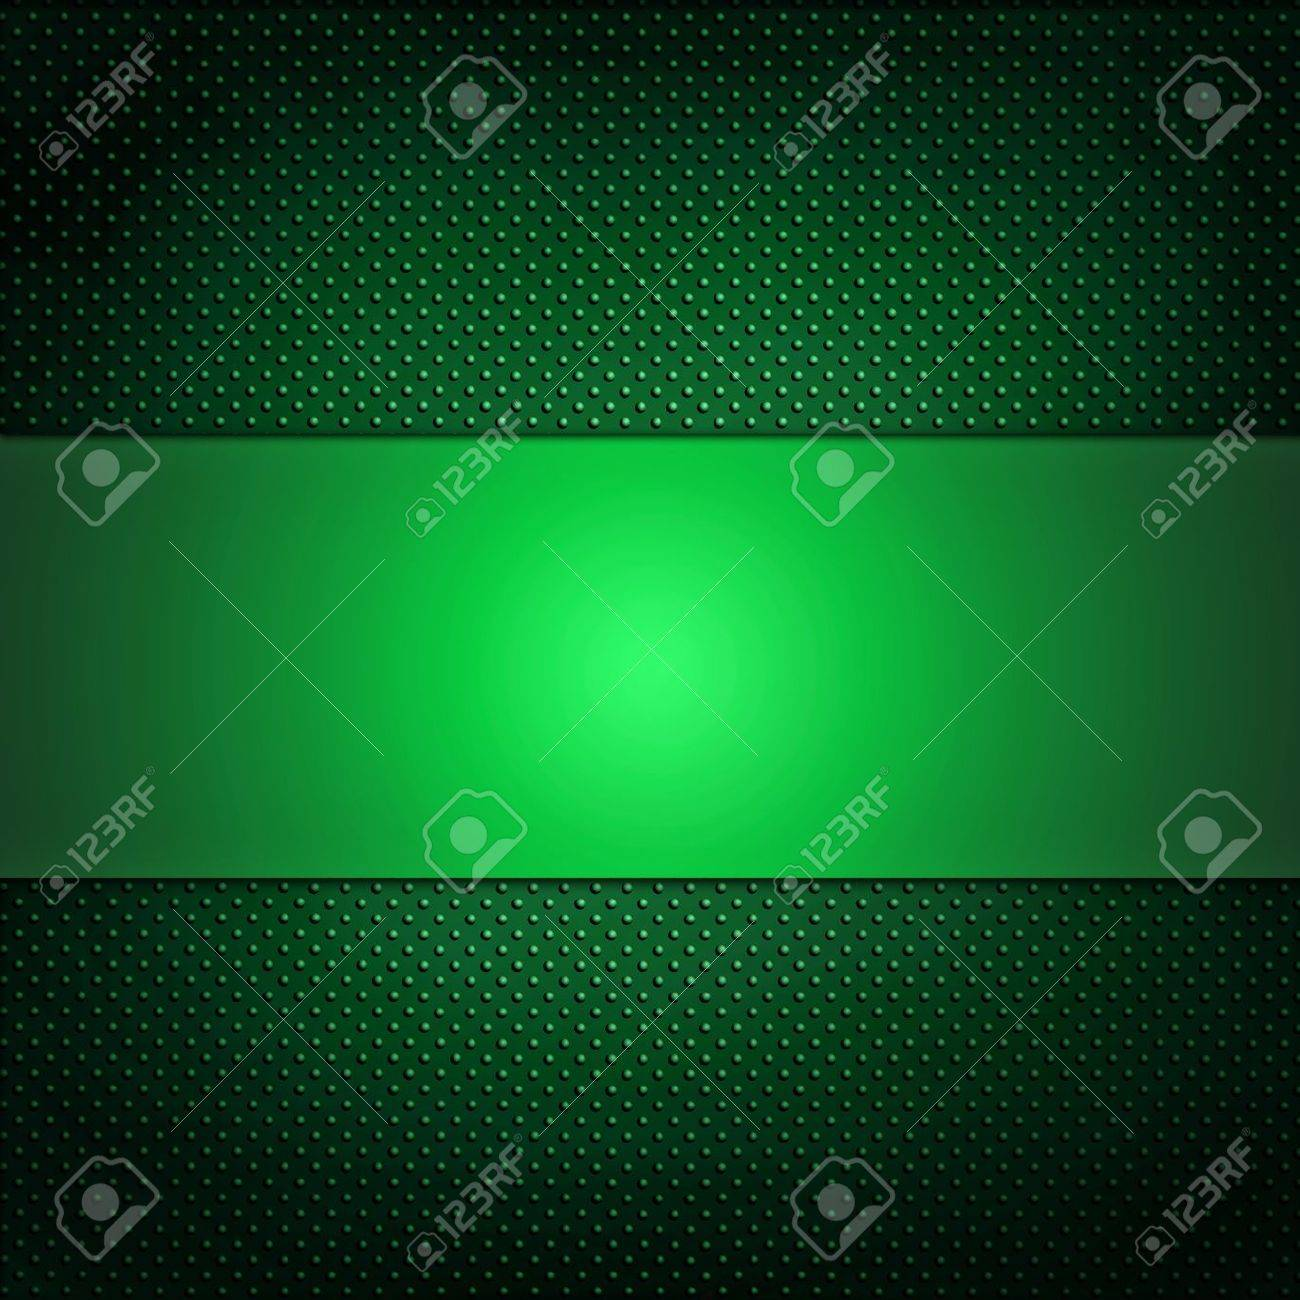 illustrate of green grill texture background. Stock Photo - 9850630